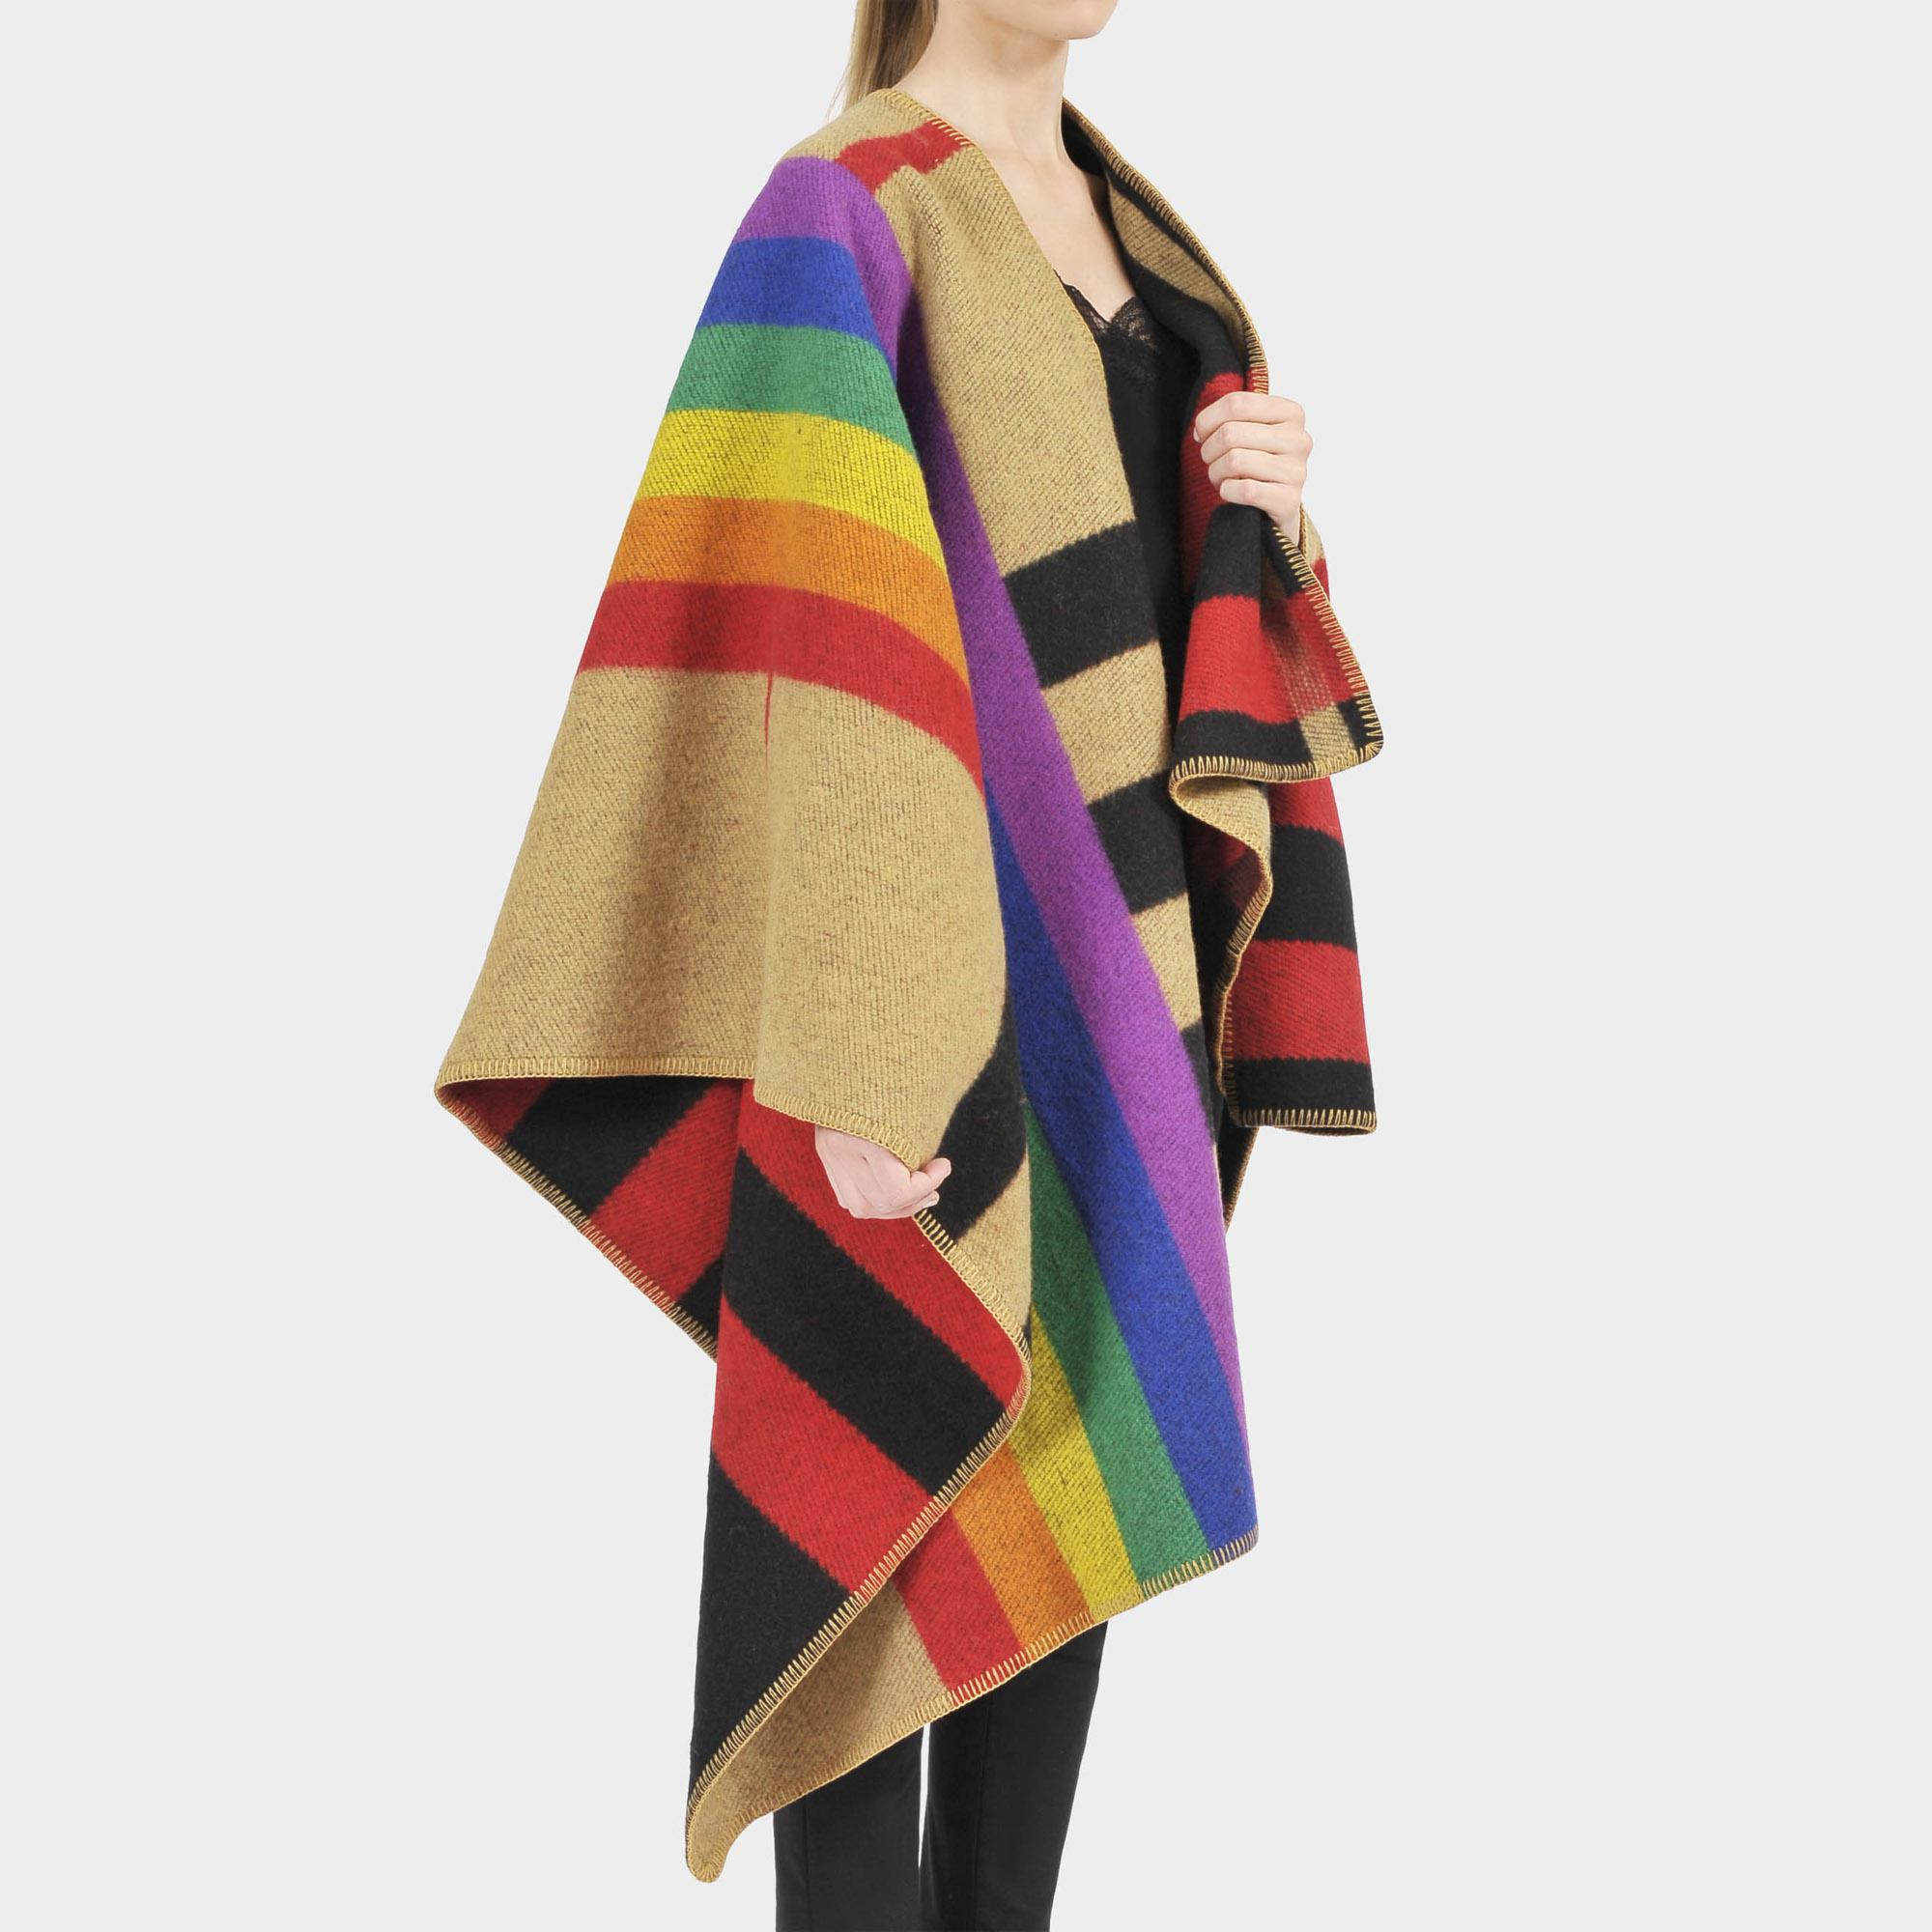 c604e2608d8 Burberry Rainbow Vintage Check Cashmere Poncho In Beige And ...